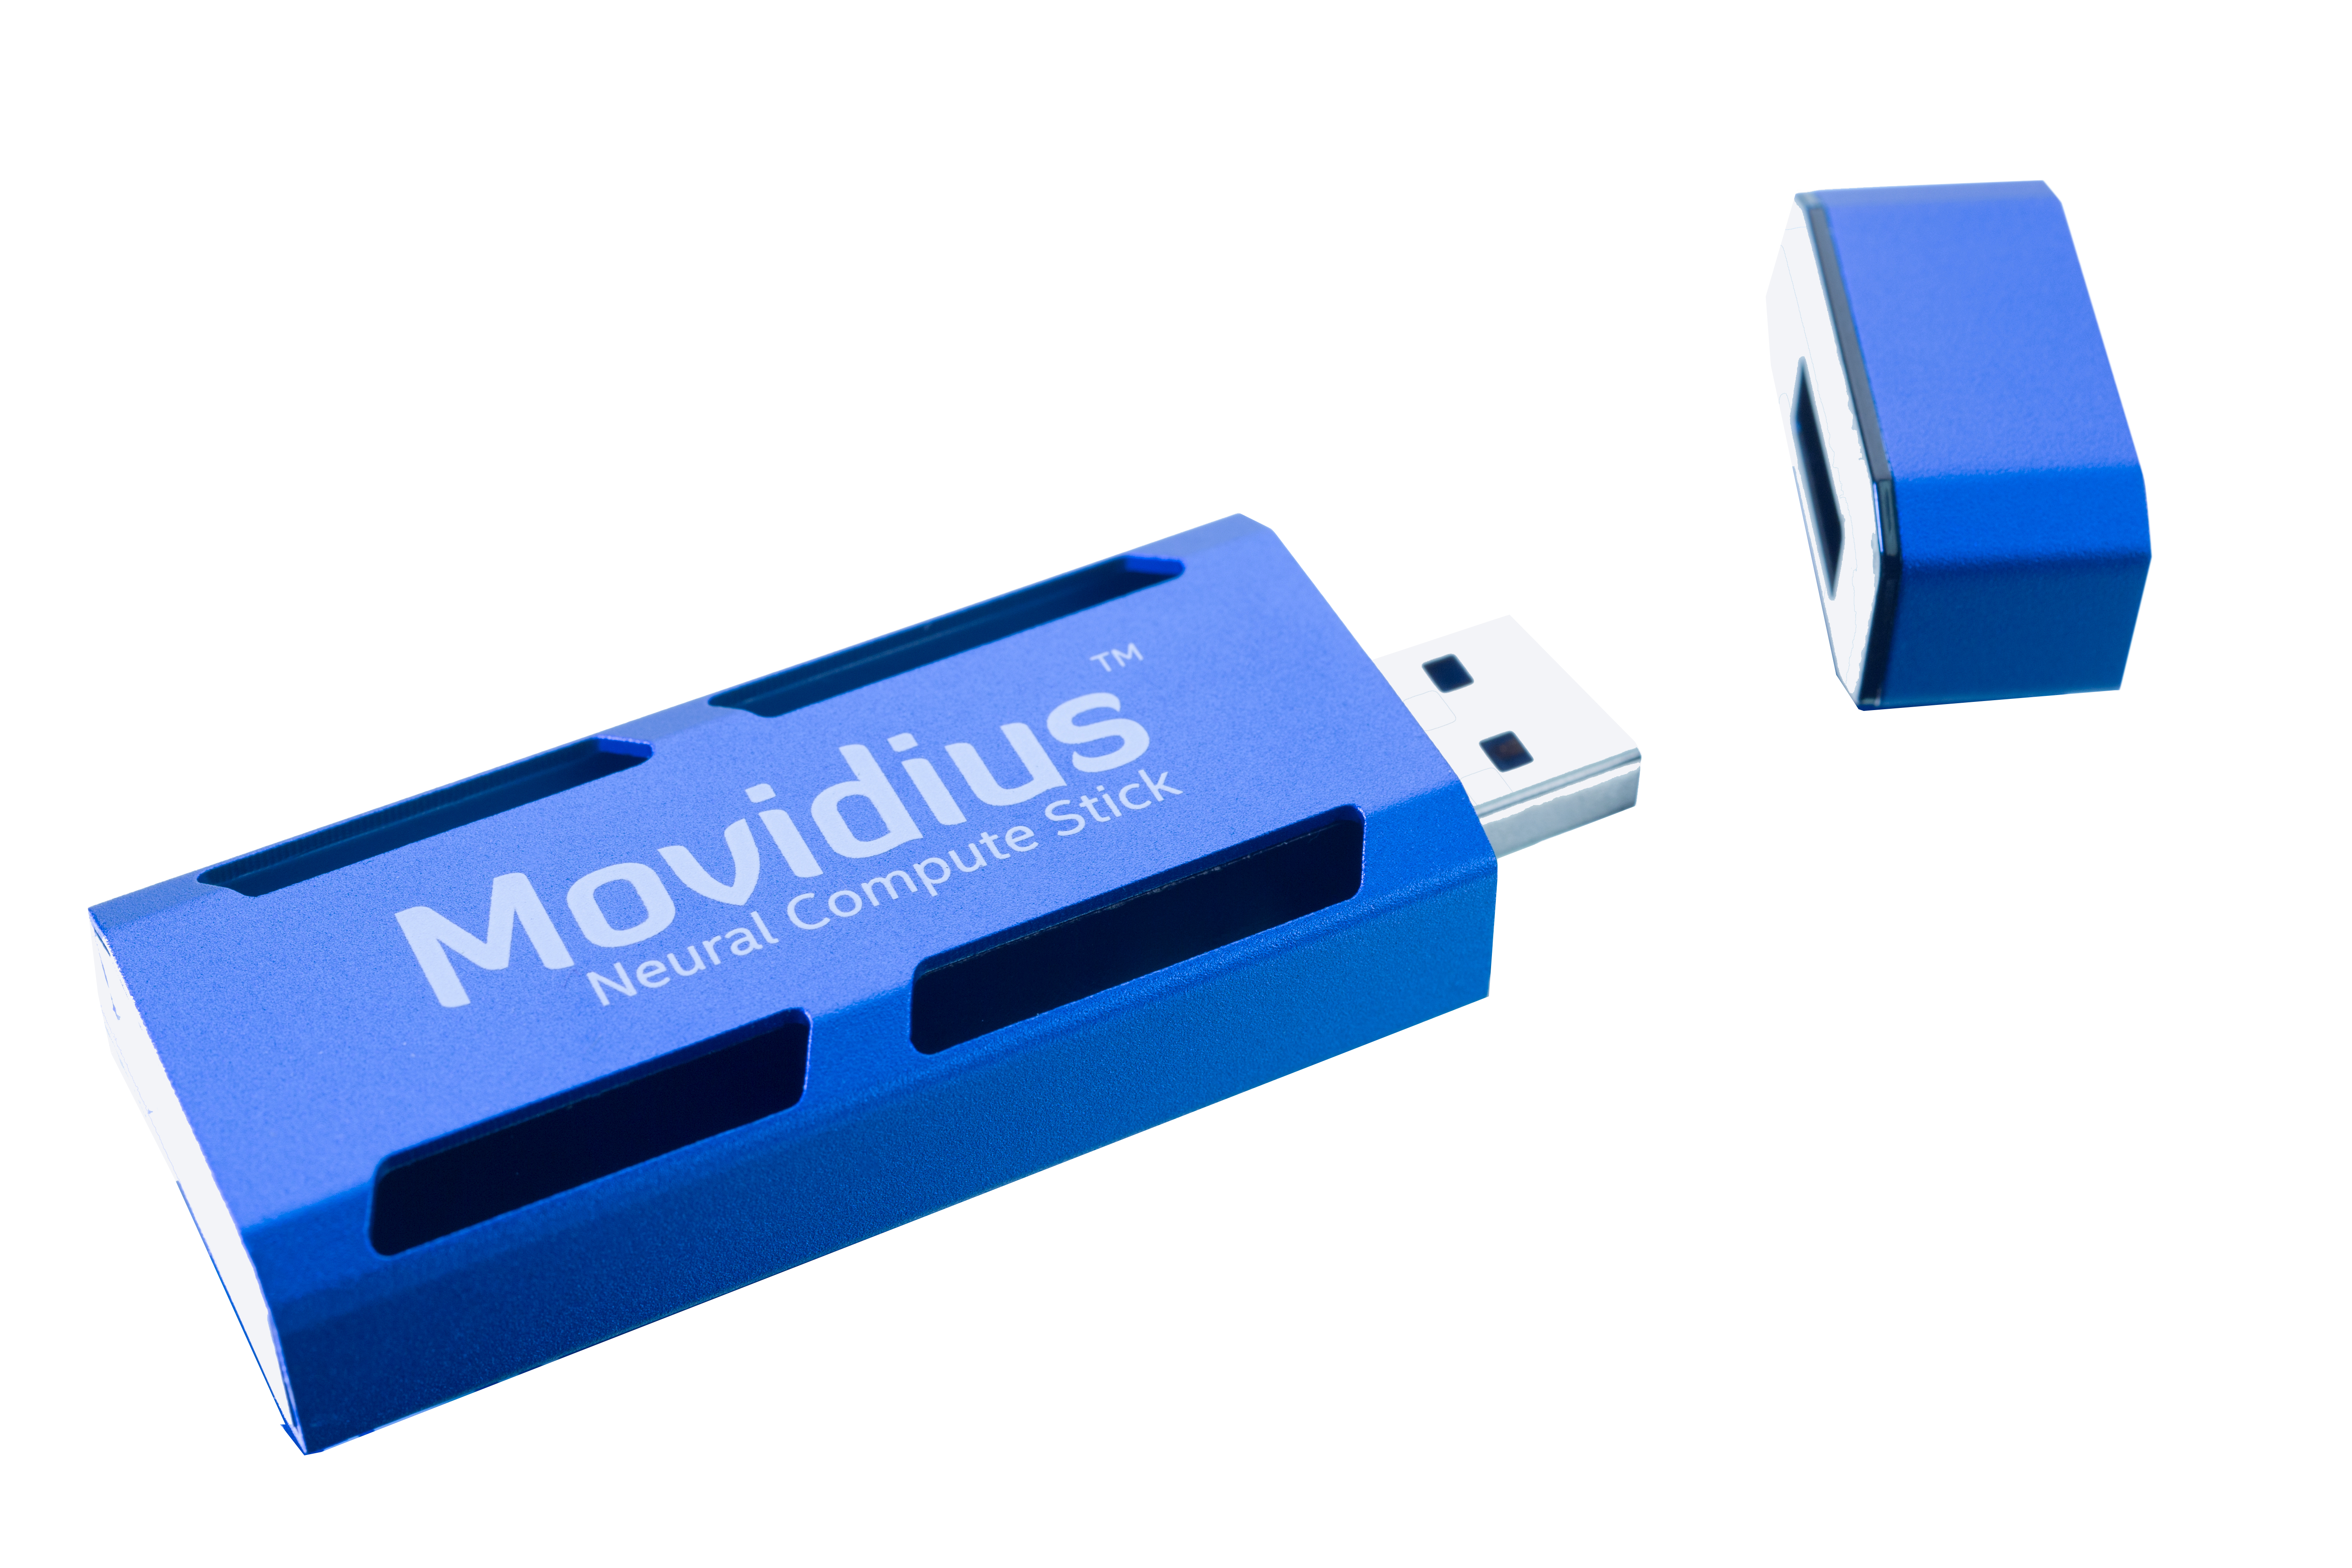 Intel Launches Movidius Neural Compute Stick: Deep Learning and AI